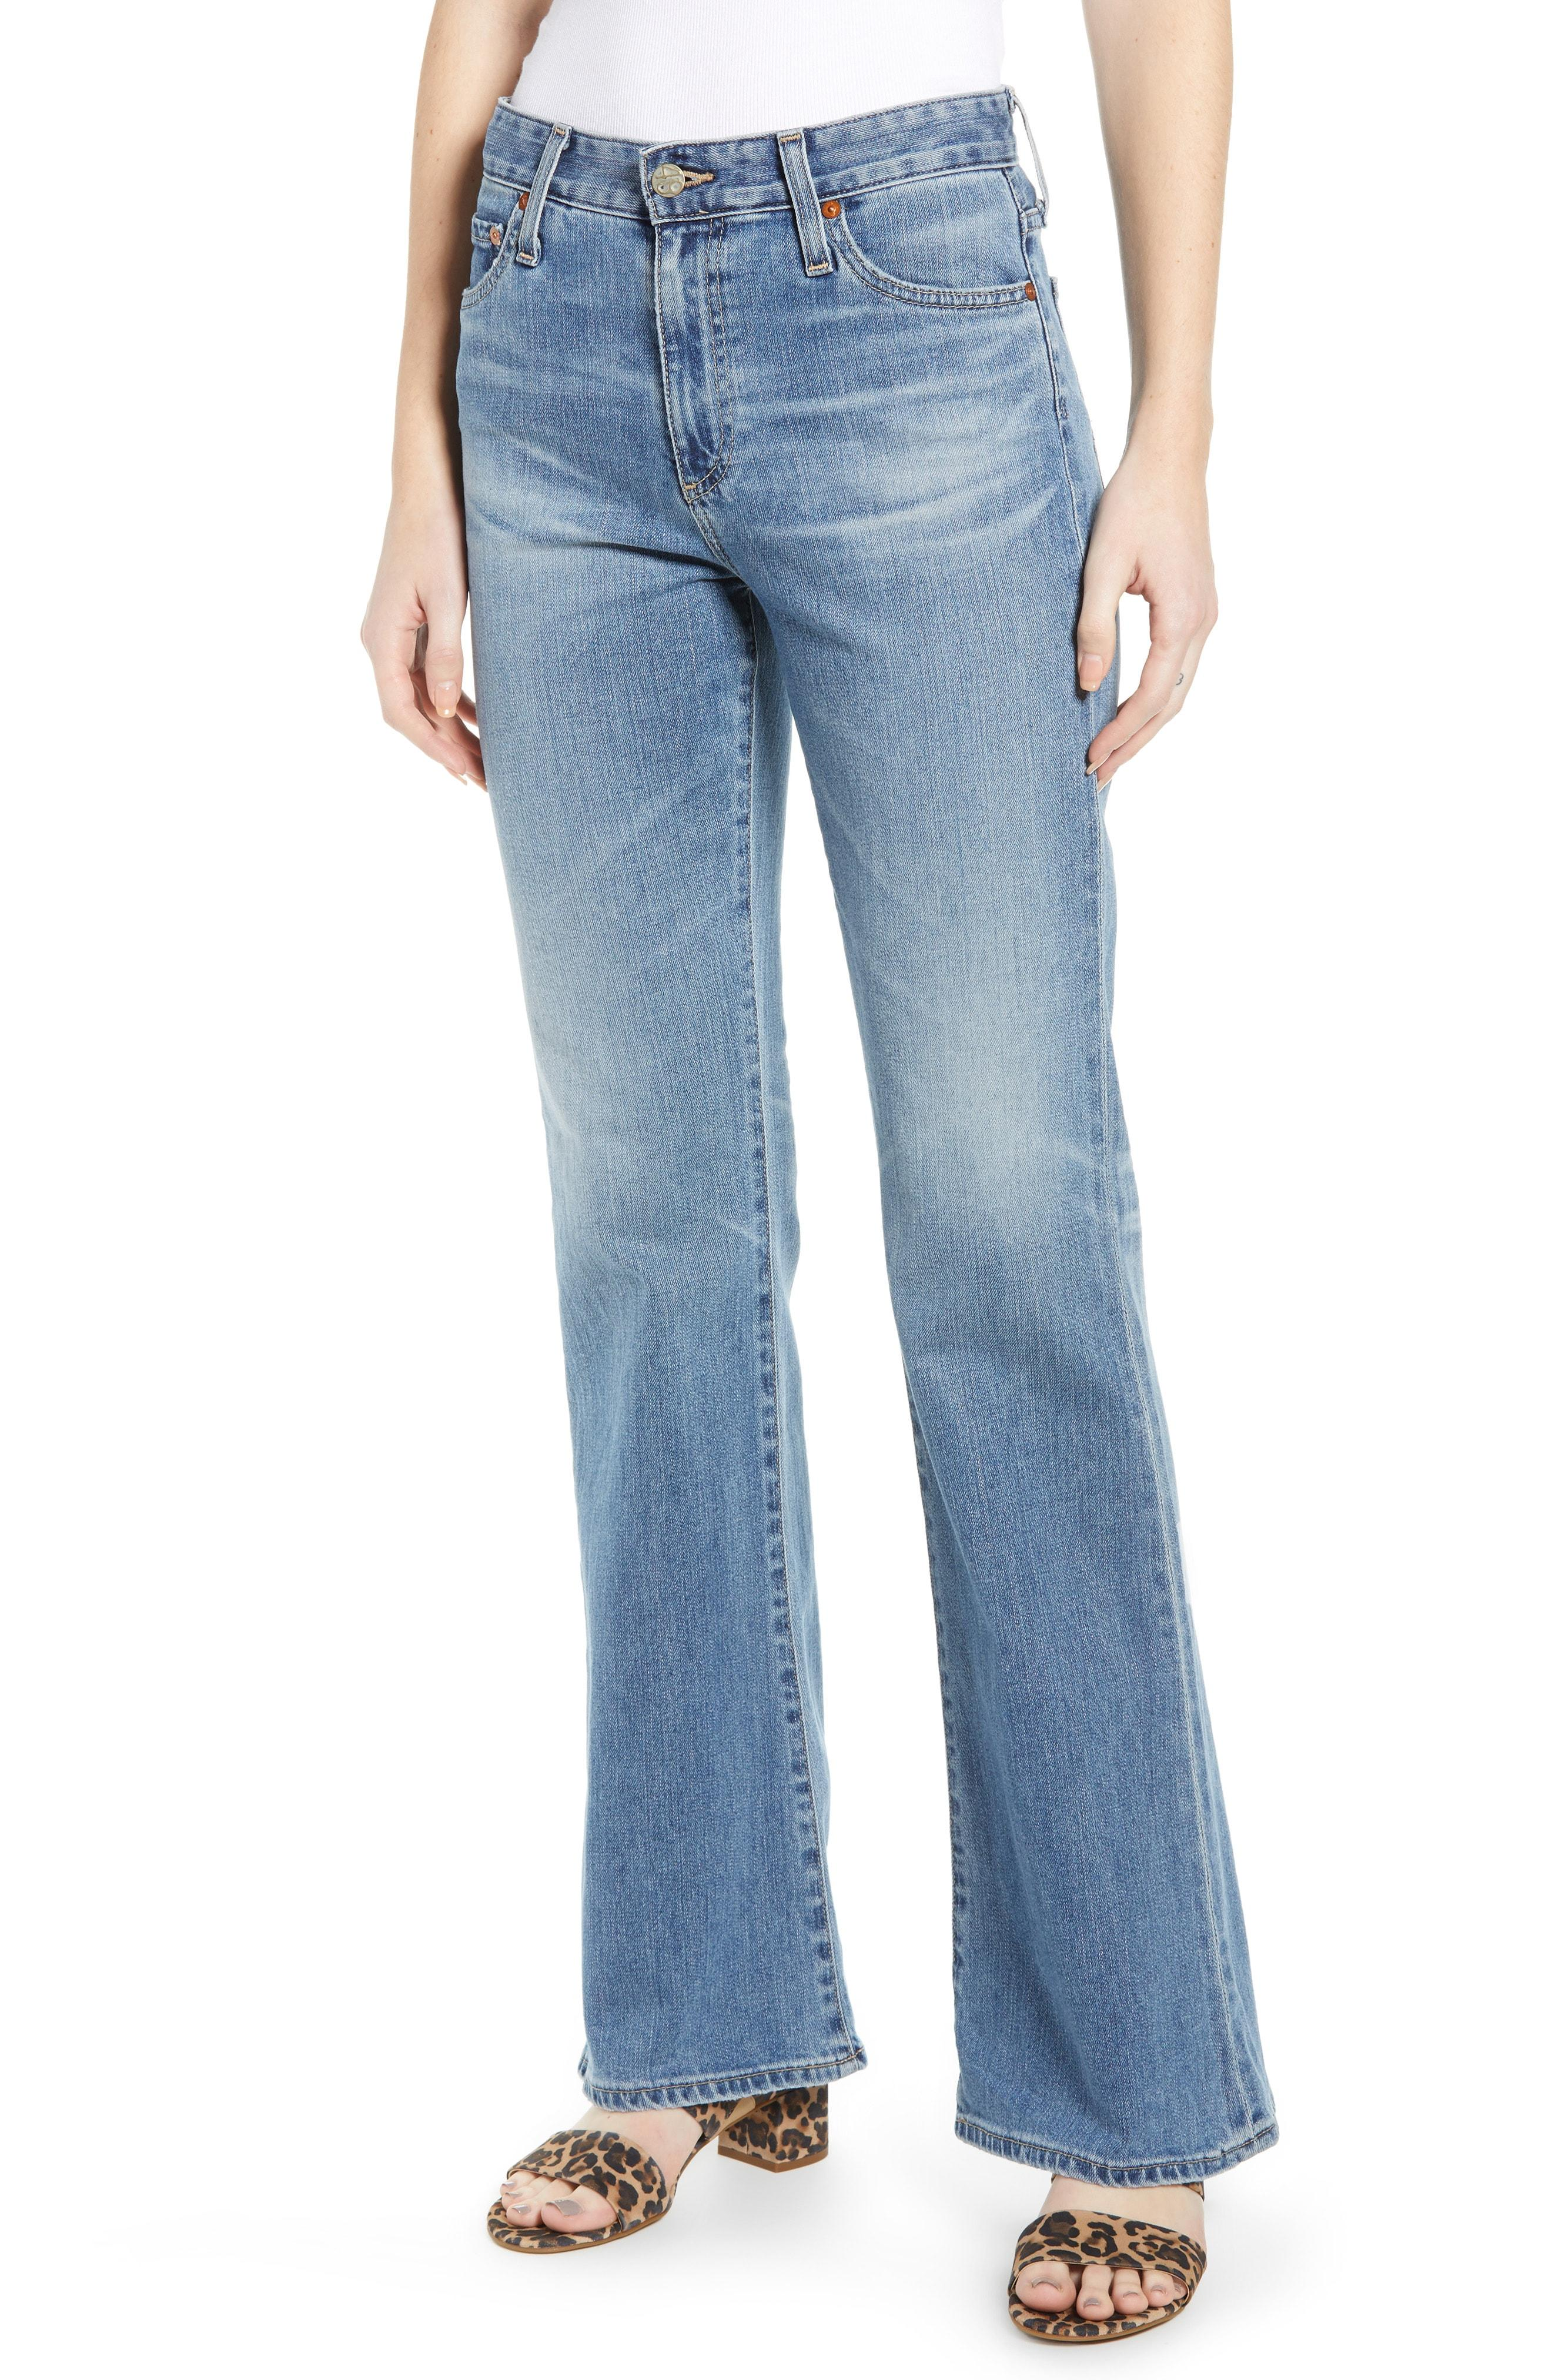 6152dbb96 Lyst - AG Jeans Quinne High Waist Flare Jeans in Blue